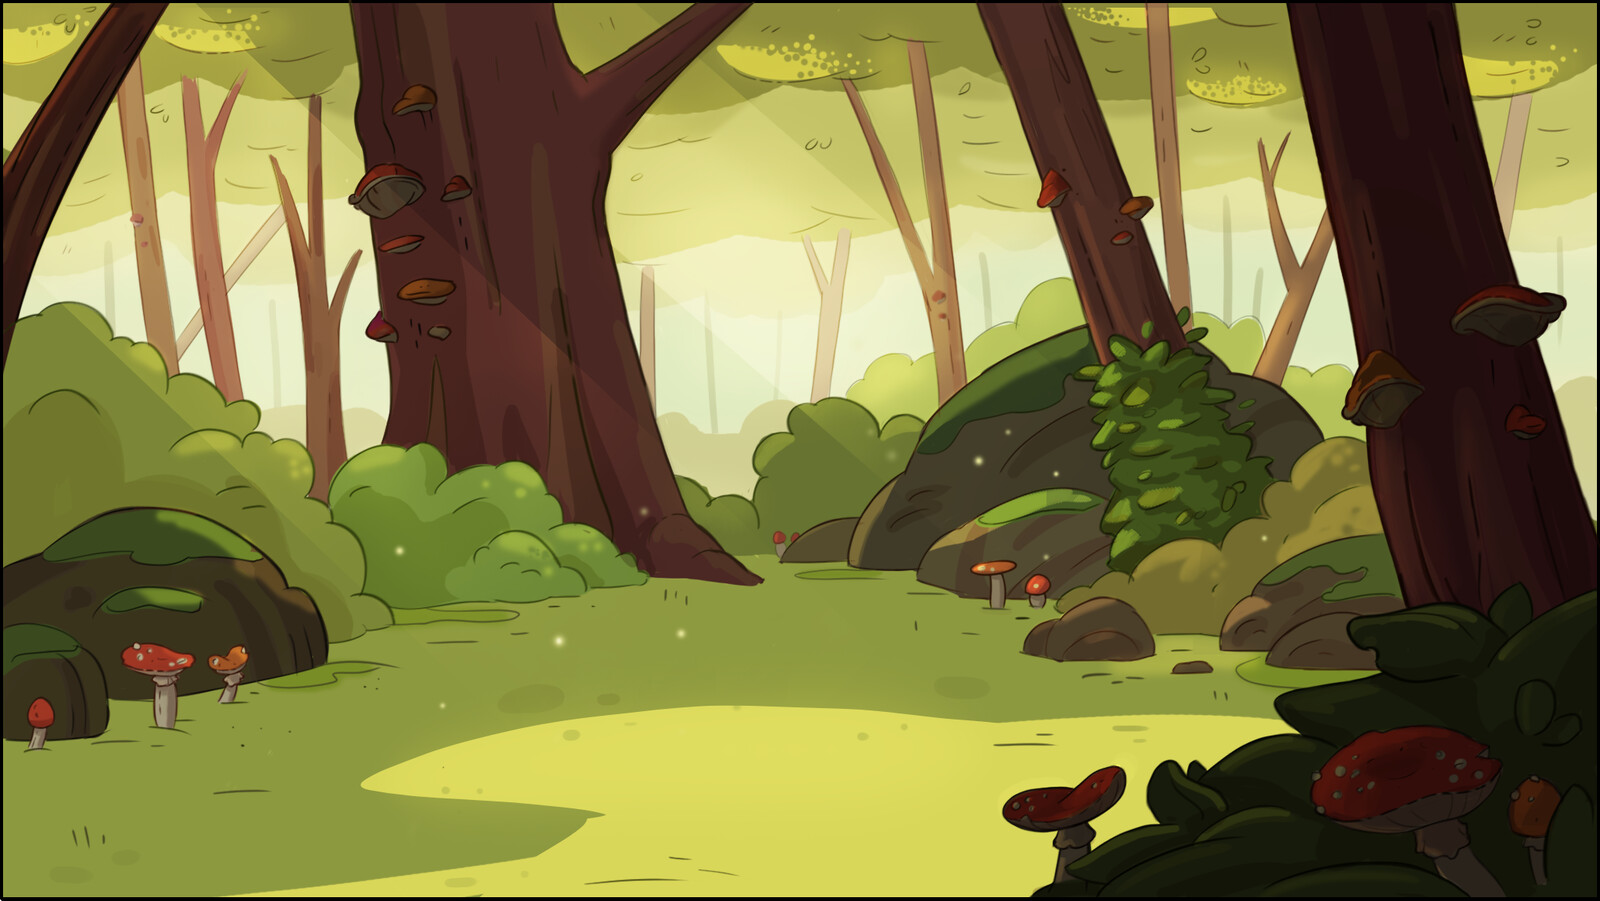 Forest BG + Process